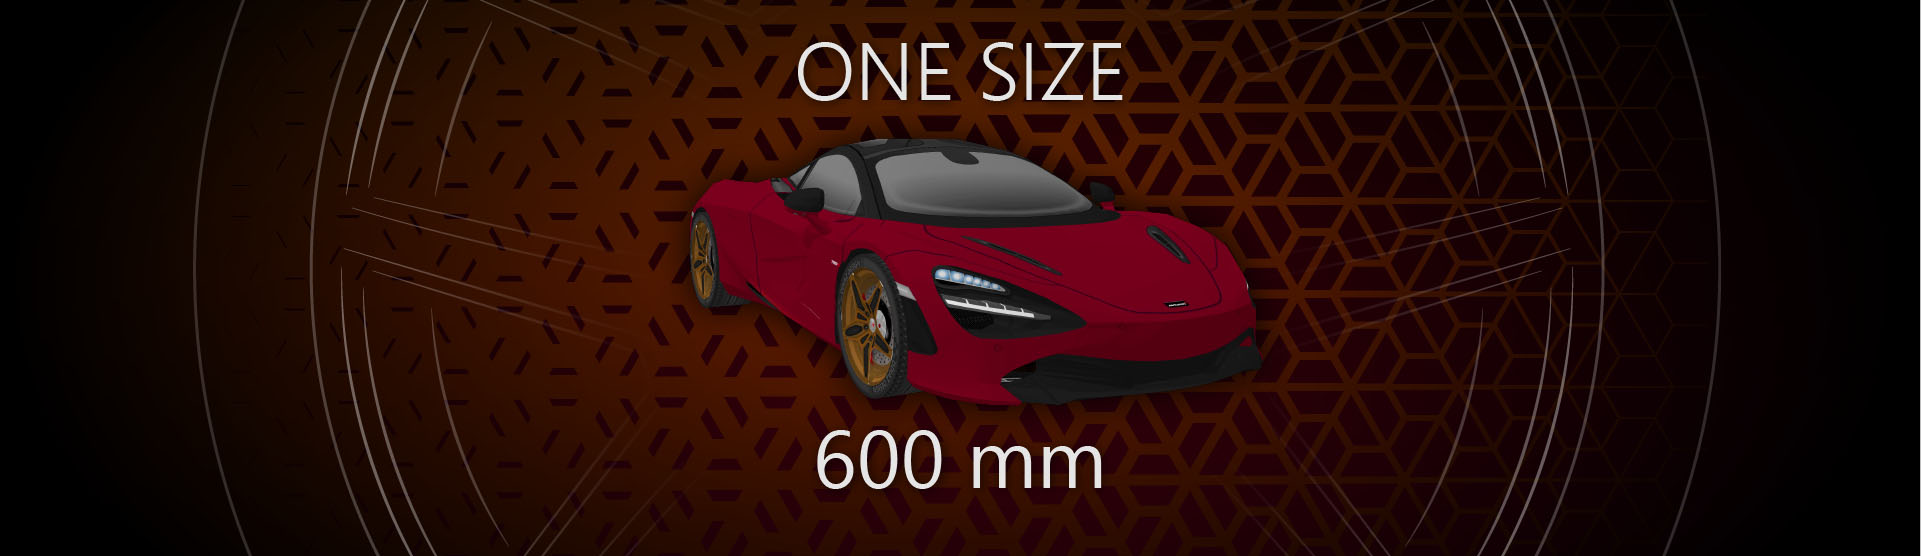 720S Download Size